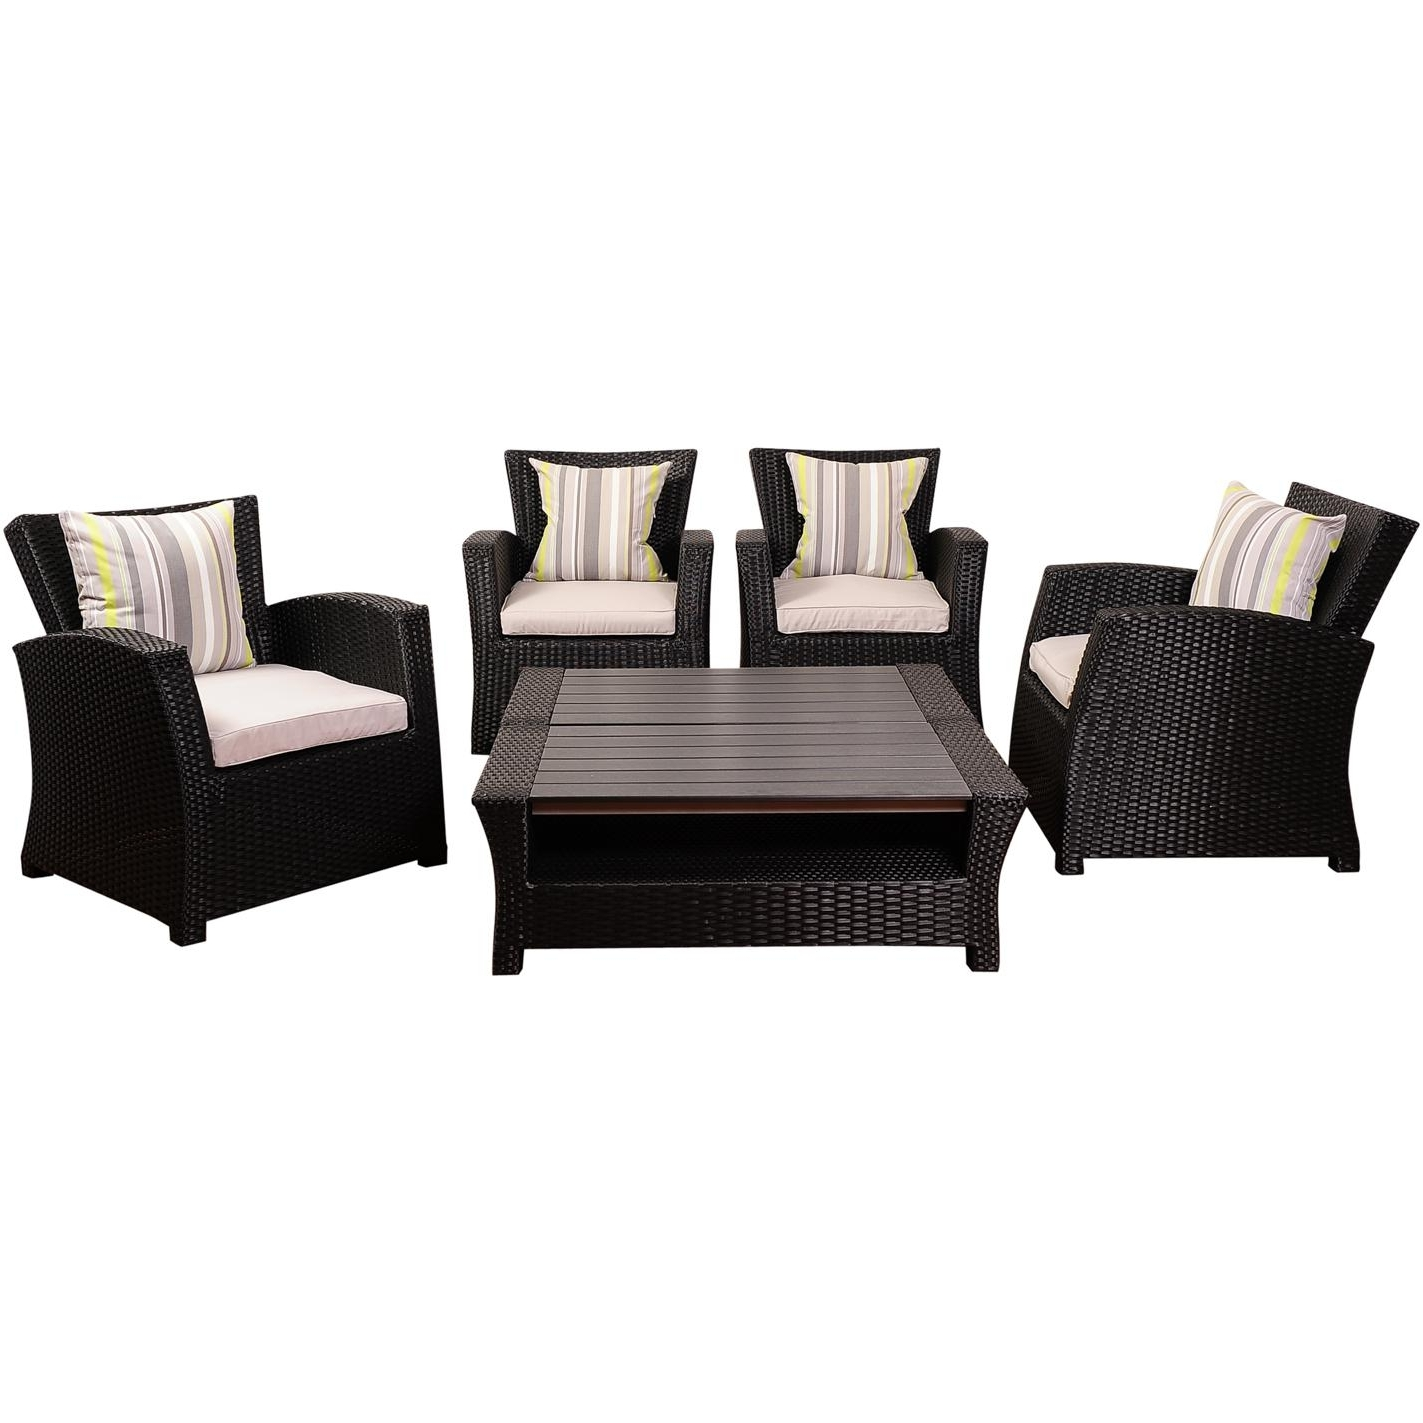 Best And Newest Black Patio Conversation Sets In Atlantic Staffordshire 4 Person Resin Wicker Patio Conversation Set (View 4 of 20)